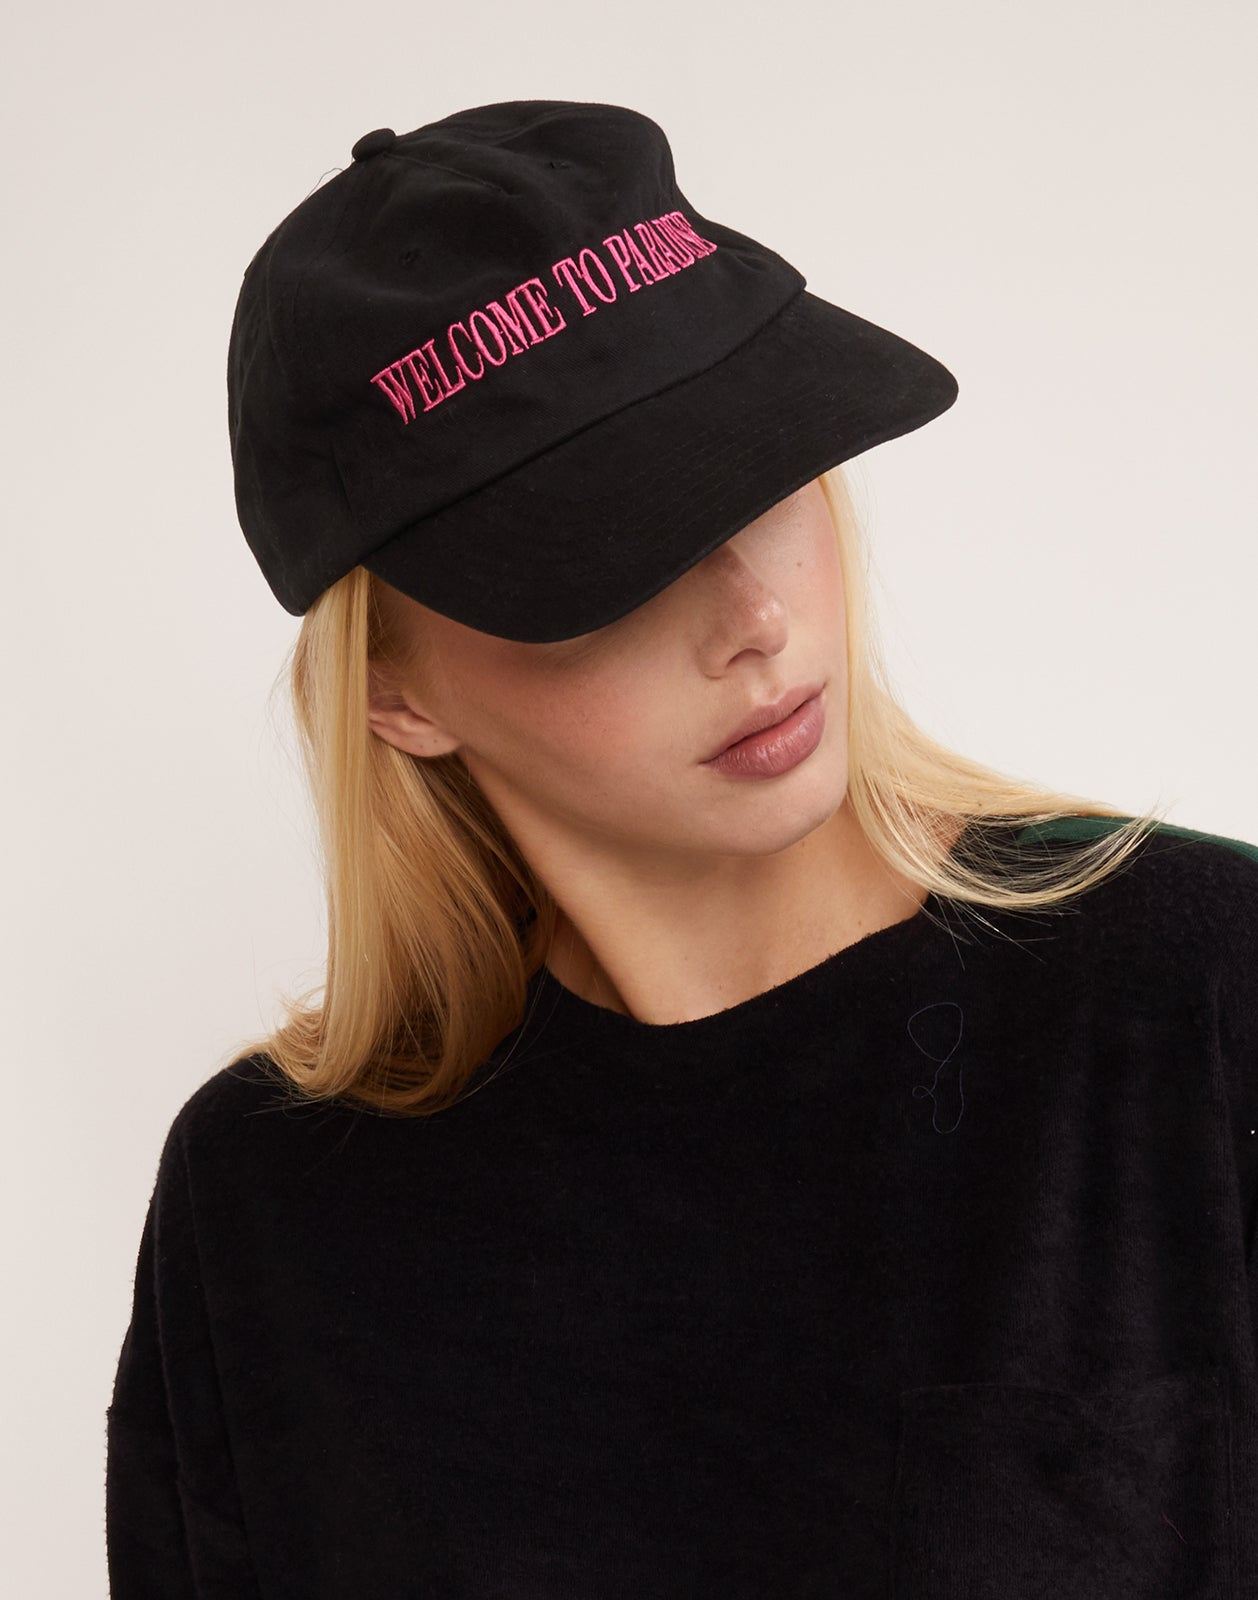 Model wearing the Welcome to Paradise baseball cap with pink stitched lettering.